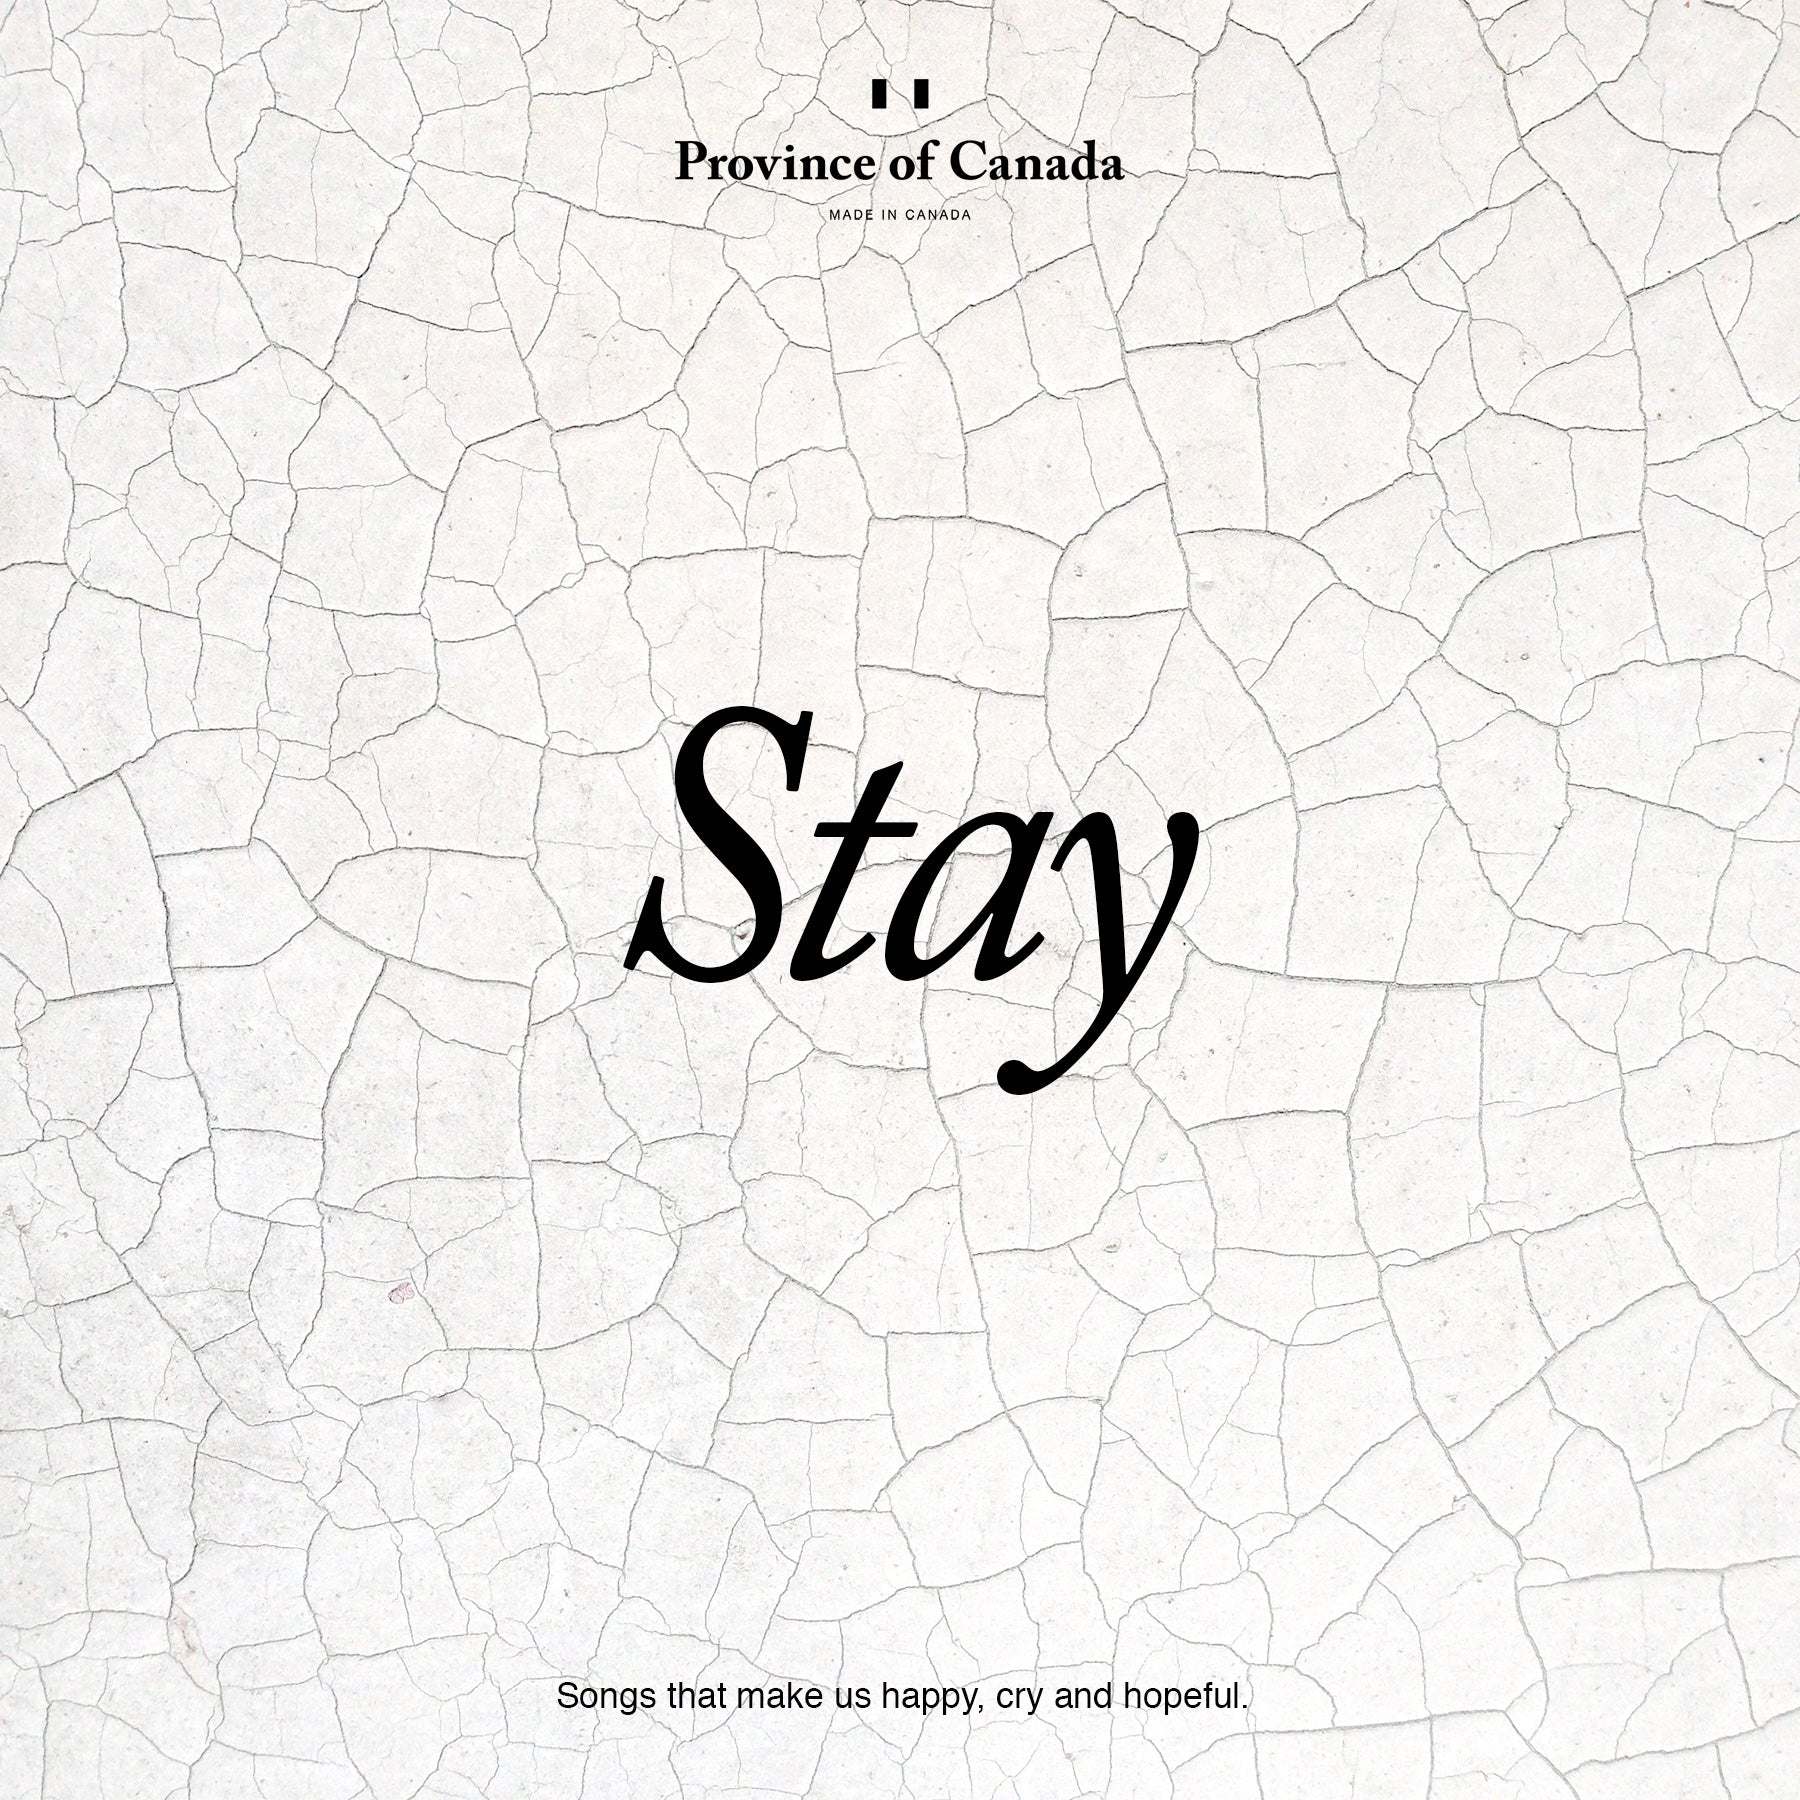 Province of Canada - Playlist Stay